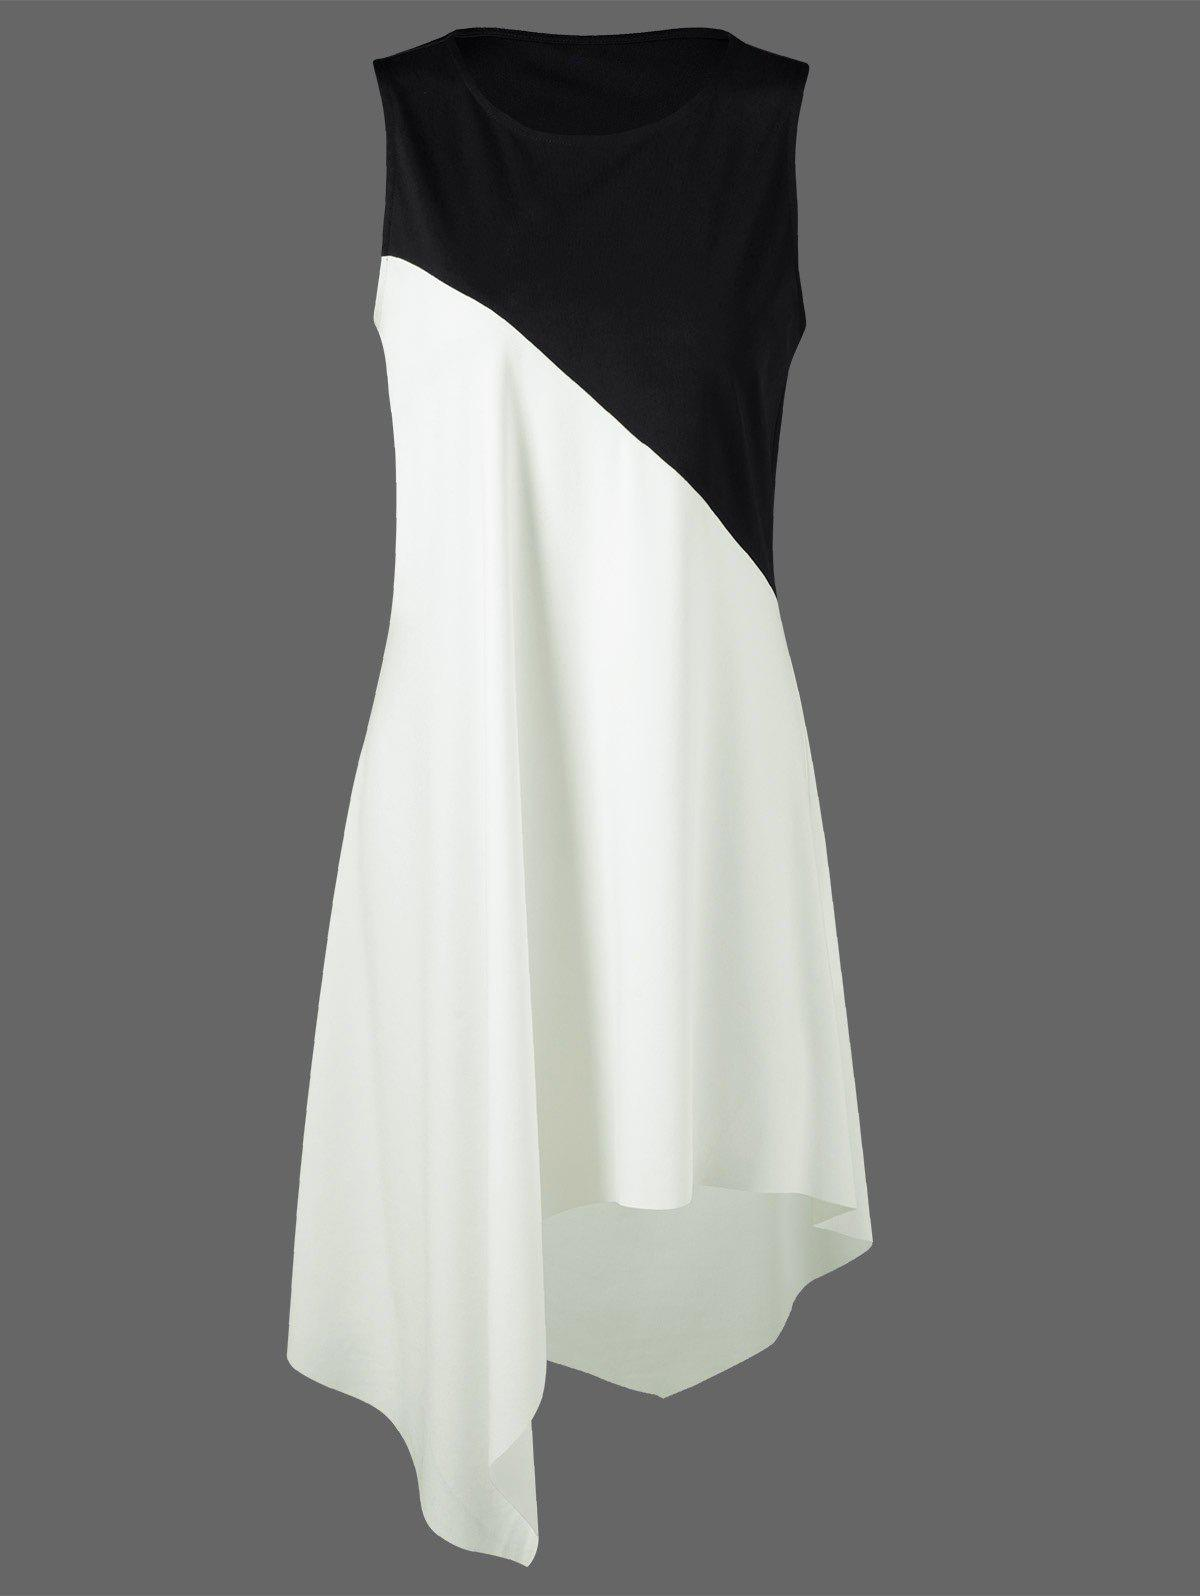 Color Block Swing Sleeveless Casual Dress BoutiqueWOMEN<br><br>Size: M; Color: WHITE AND BLACK; Style: Casual; Material: Polyester,Spandex; Silhouette: Asymmetrical; Dresses Length: Knee-Length; Neckline: Round Collar; Sleeve Length: Sleeveless; Pattern Type: Patchwork; With Belt: No; Season: Summer; Weight: 0.2500kg; Package Contents: 1 x Dress; Occasion: Causal,Going Out,Outdoor;